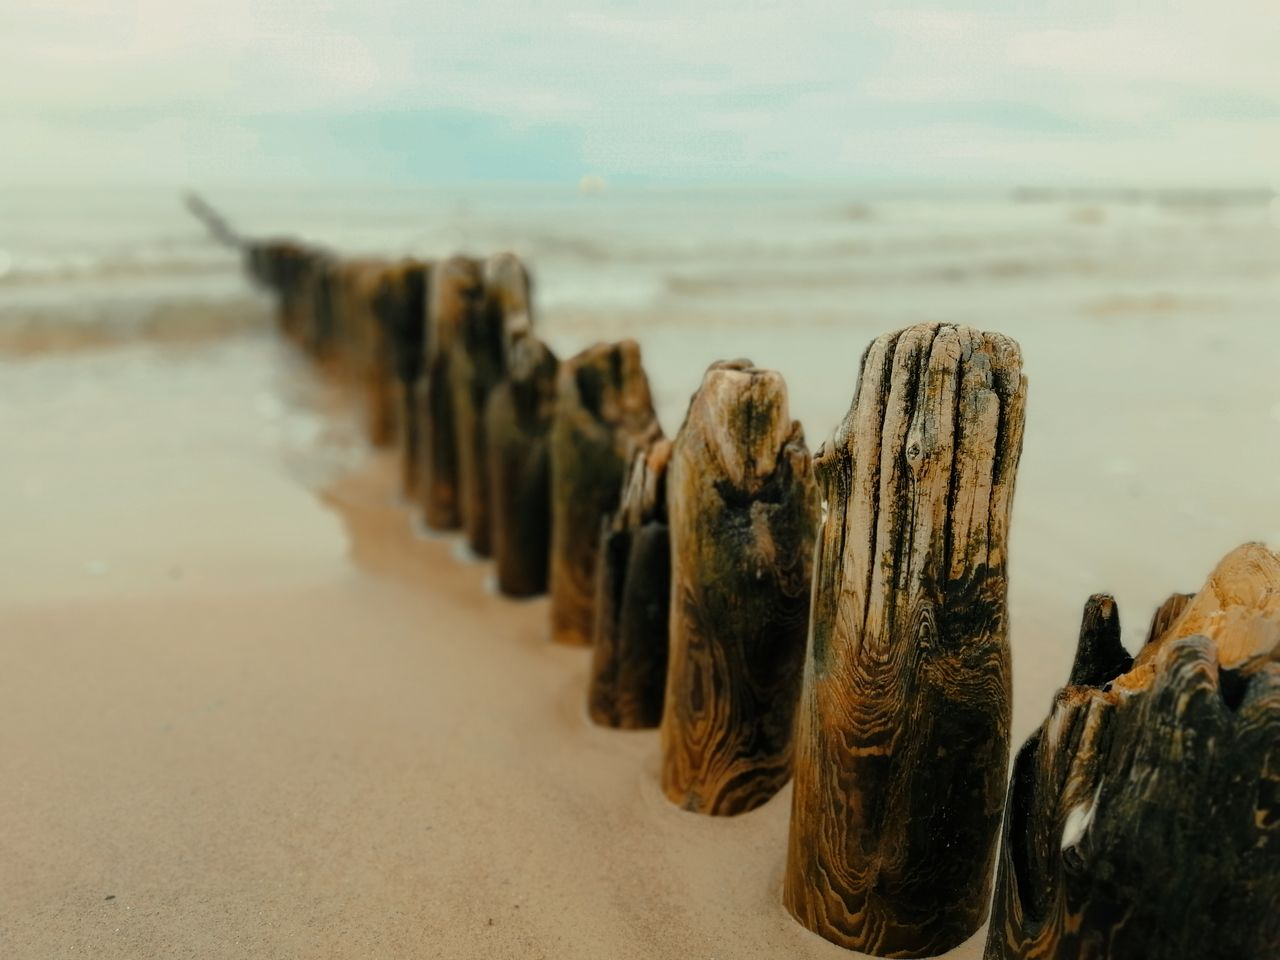 sea, land, beach, sand, water, nature, horizon over water, sky, no people, focus on foreground, horizon, beauty in nature, day, close-up, tranquility, scenics - nature, tranquil scene, in a row, outdoors, wooden post